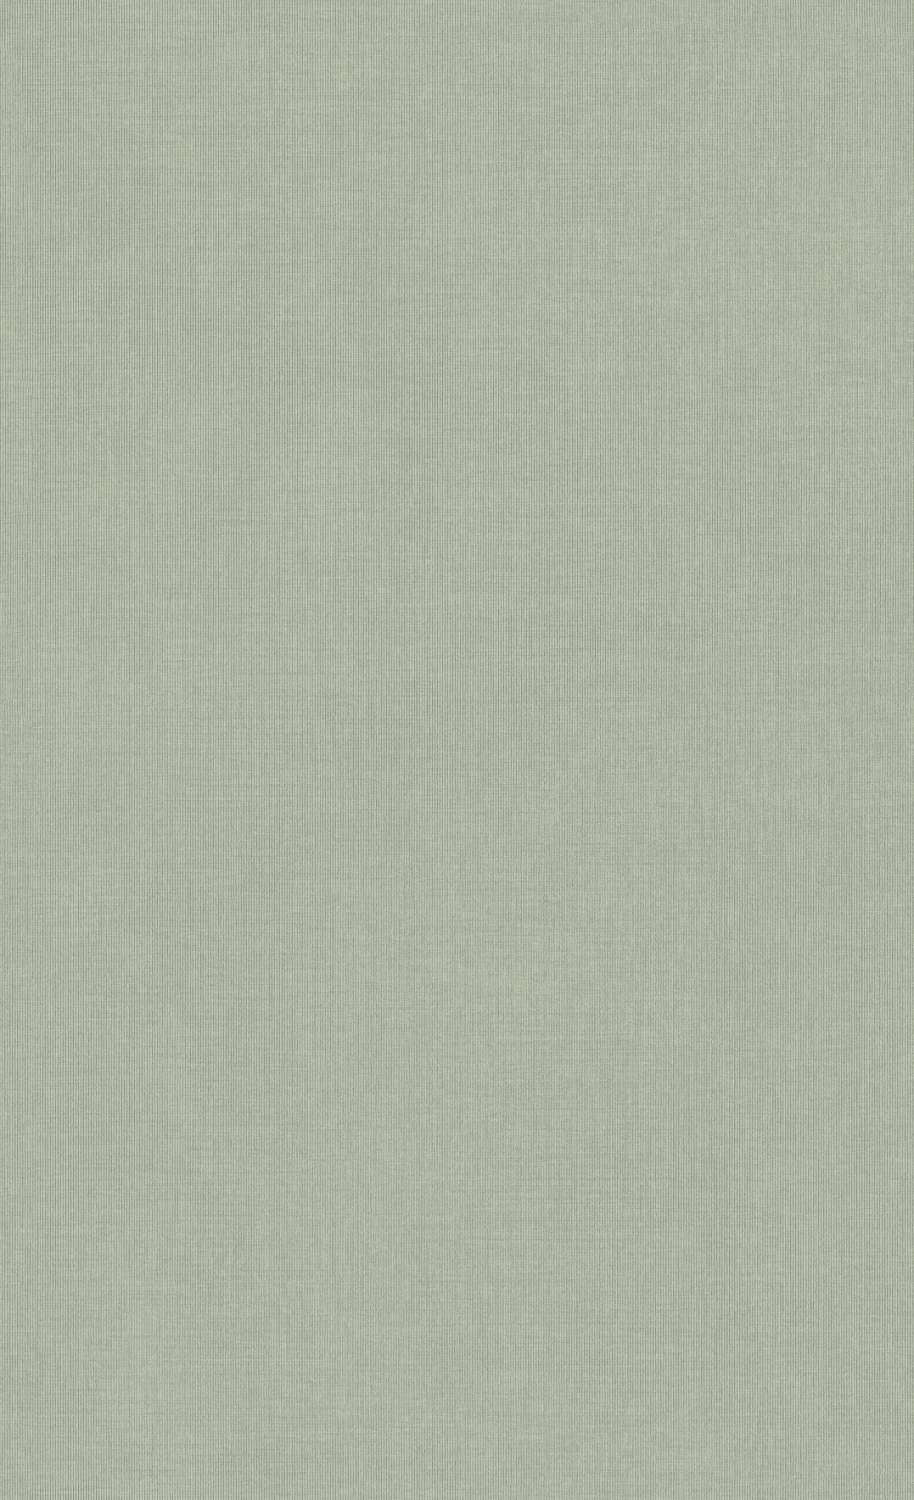 Light Grey Basic Texture Vinyl Wallpaper C7369. Grey Wallpaper. Vinyl wallpaper. Commercial wallpaper. Neutral wallpaper. Beige wallpaper. Textured wallpaper.